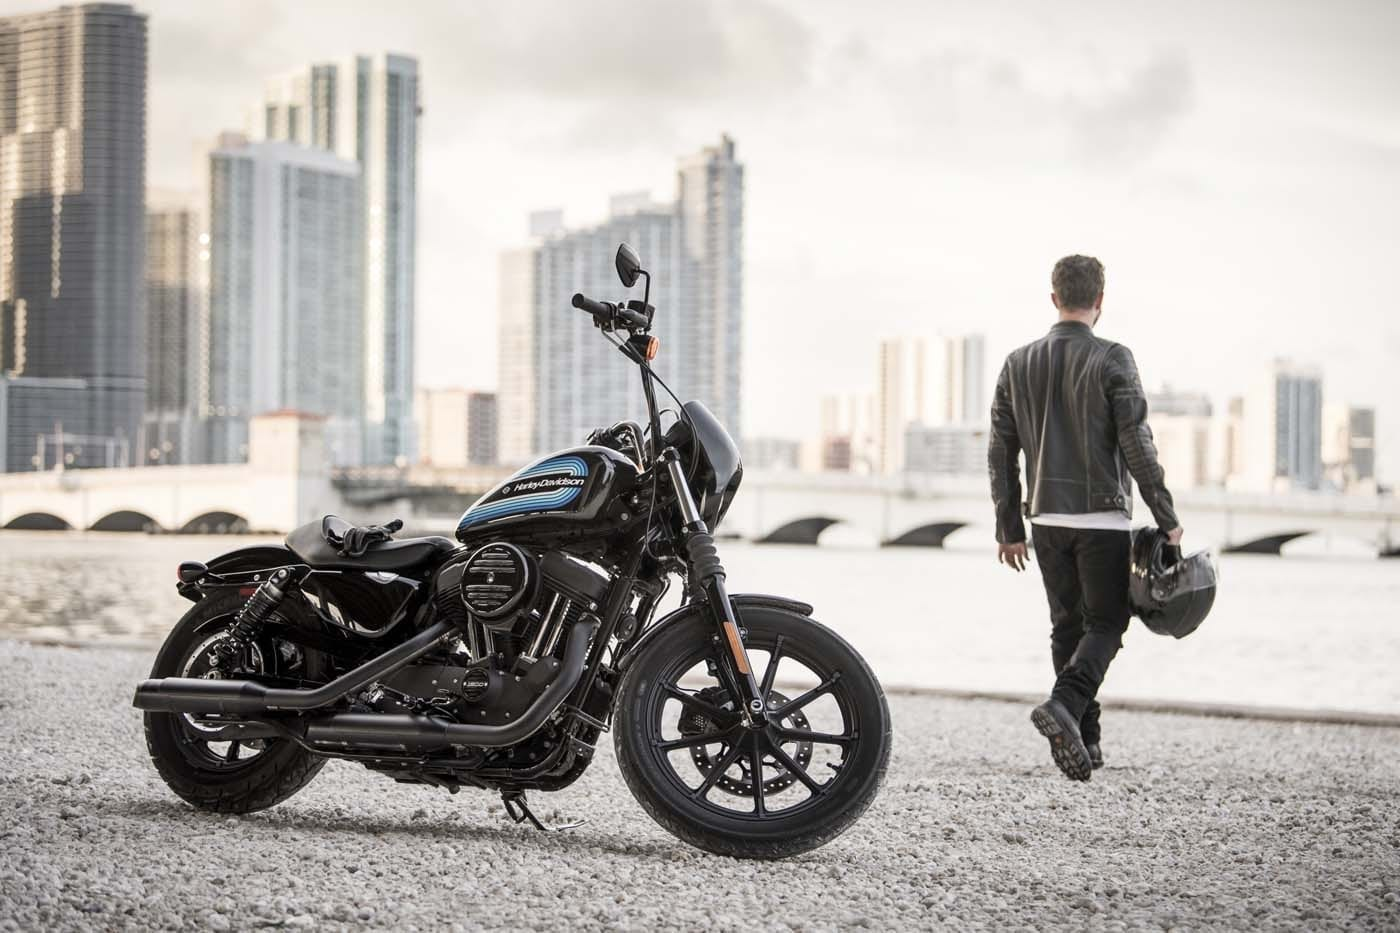 HARLEY-DAVIDSON FORTY-EIGHT SPECIAL AND IRON 1200 SPORTSTERS 4